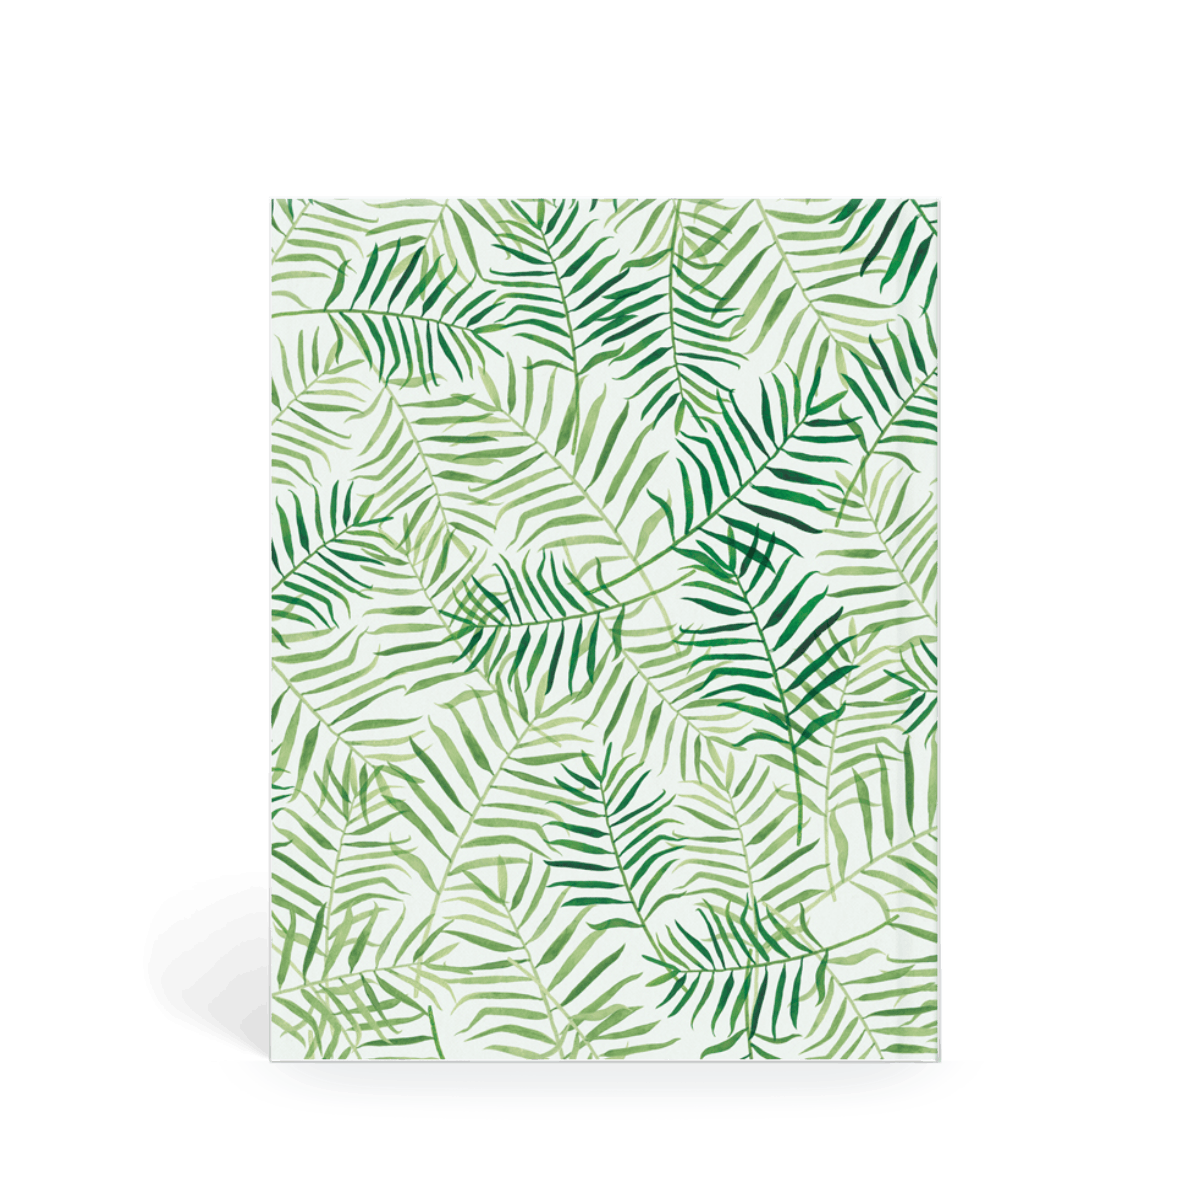 Https%3a%2f%2fwww.papier.com%2fproduct image%2f44224%2f27%2fpalm fronds 11107 back 1534766590.png?ixlib=rb 1.1